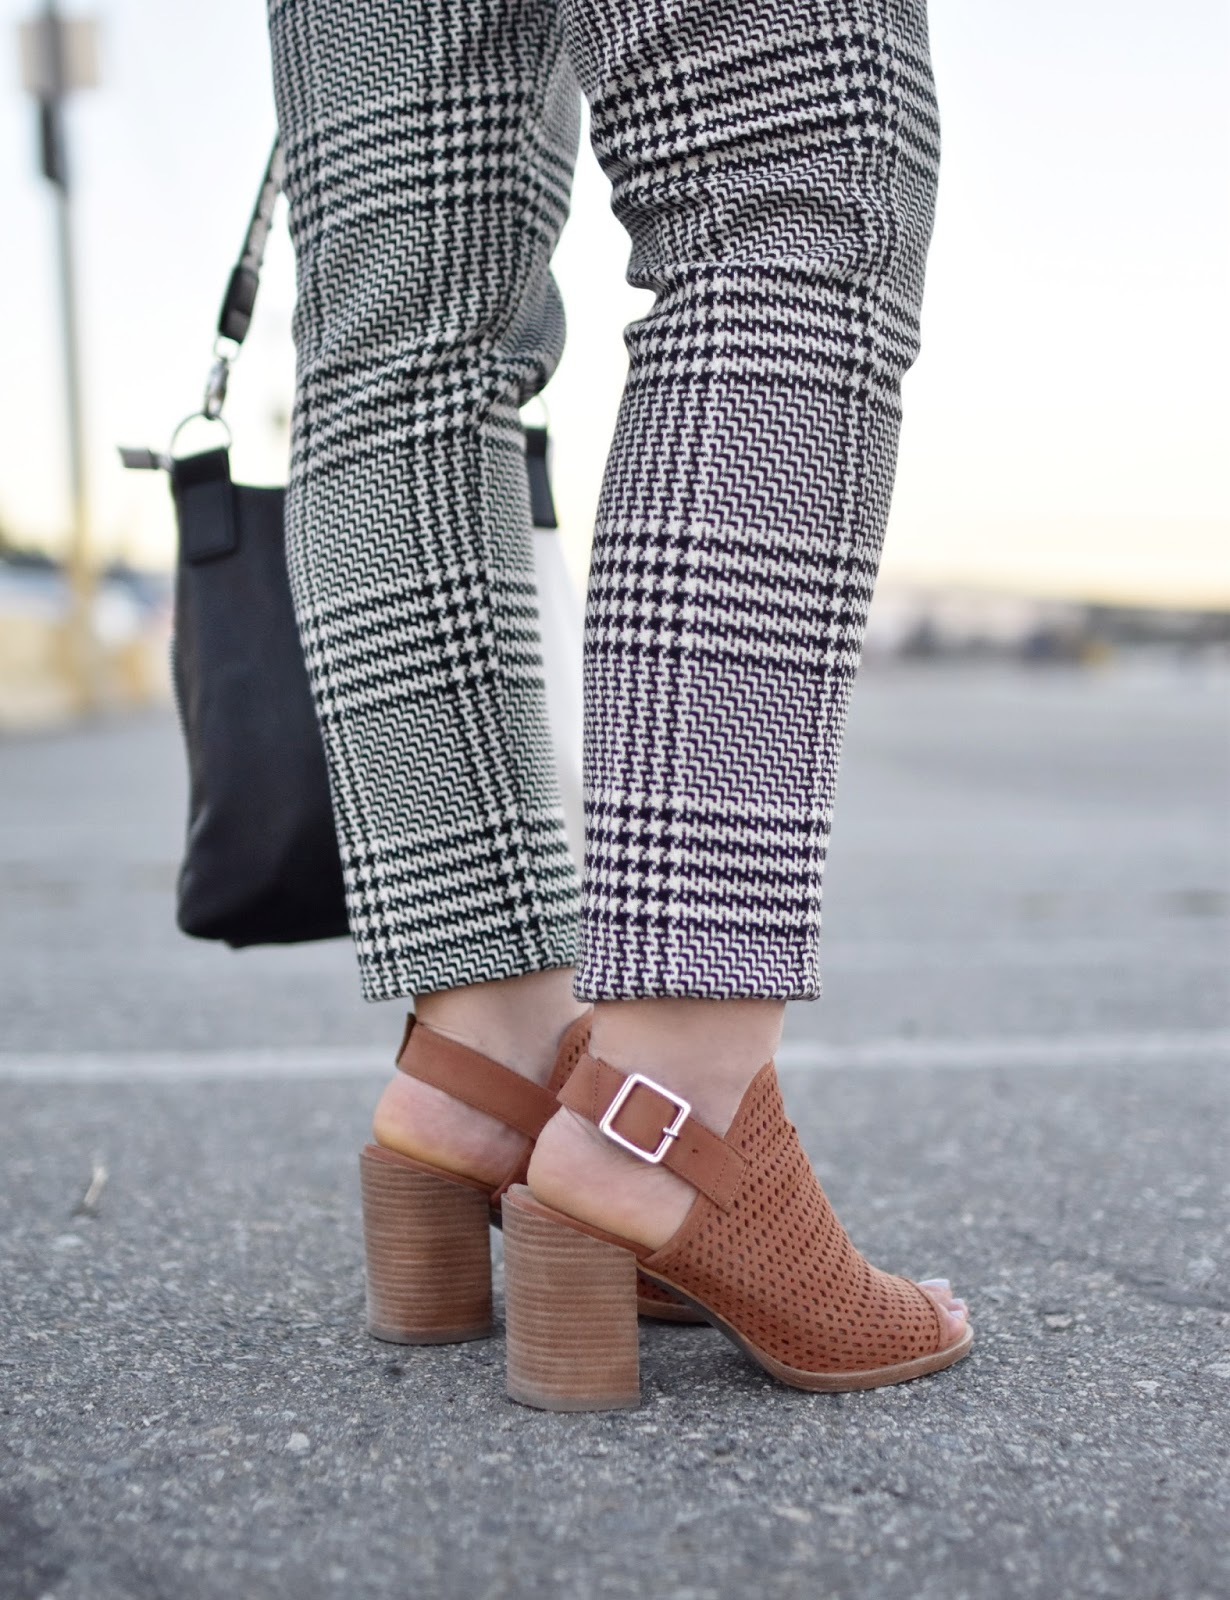 Monika Faulkner outfit inspiration - houndstooth trousers, cognac open-toe booties